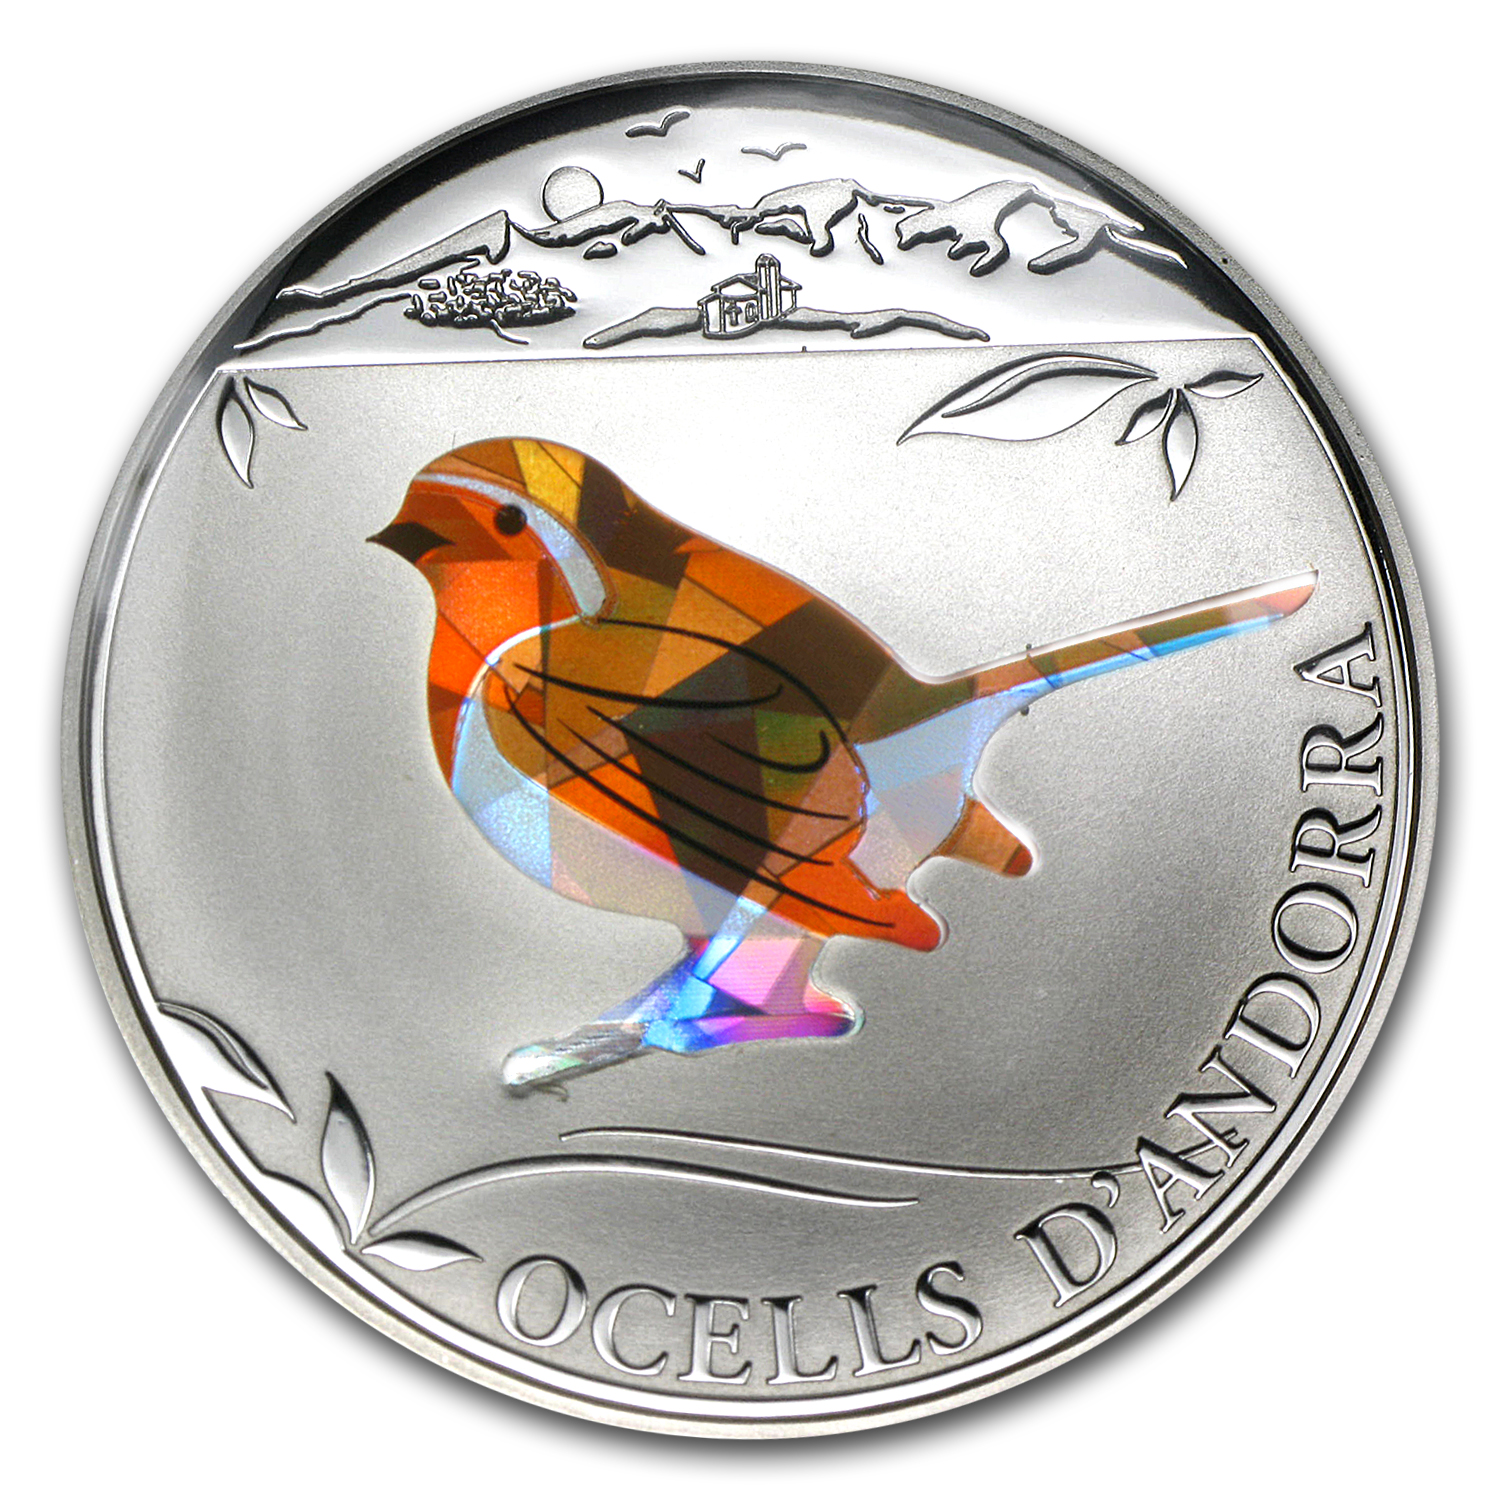 2012 Andorra Proof Silver 5 Diners Prism Birds Robin